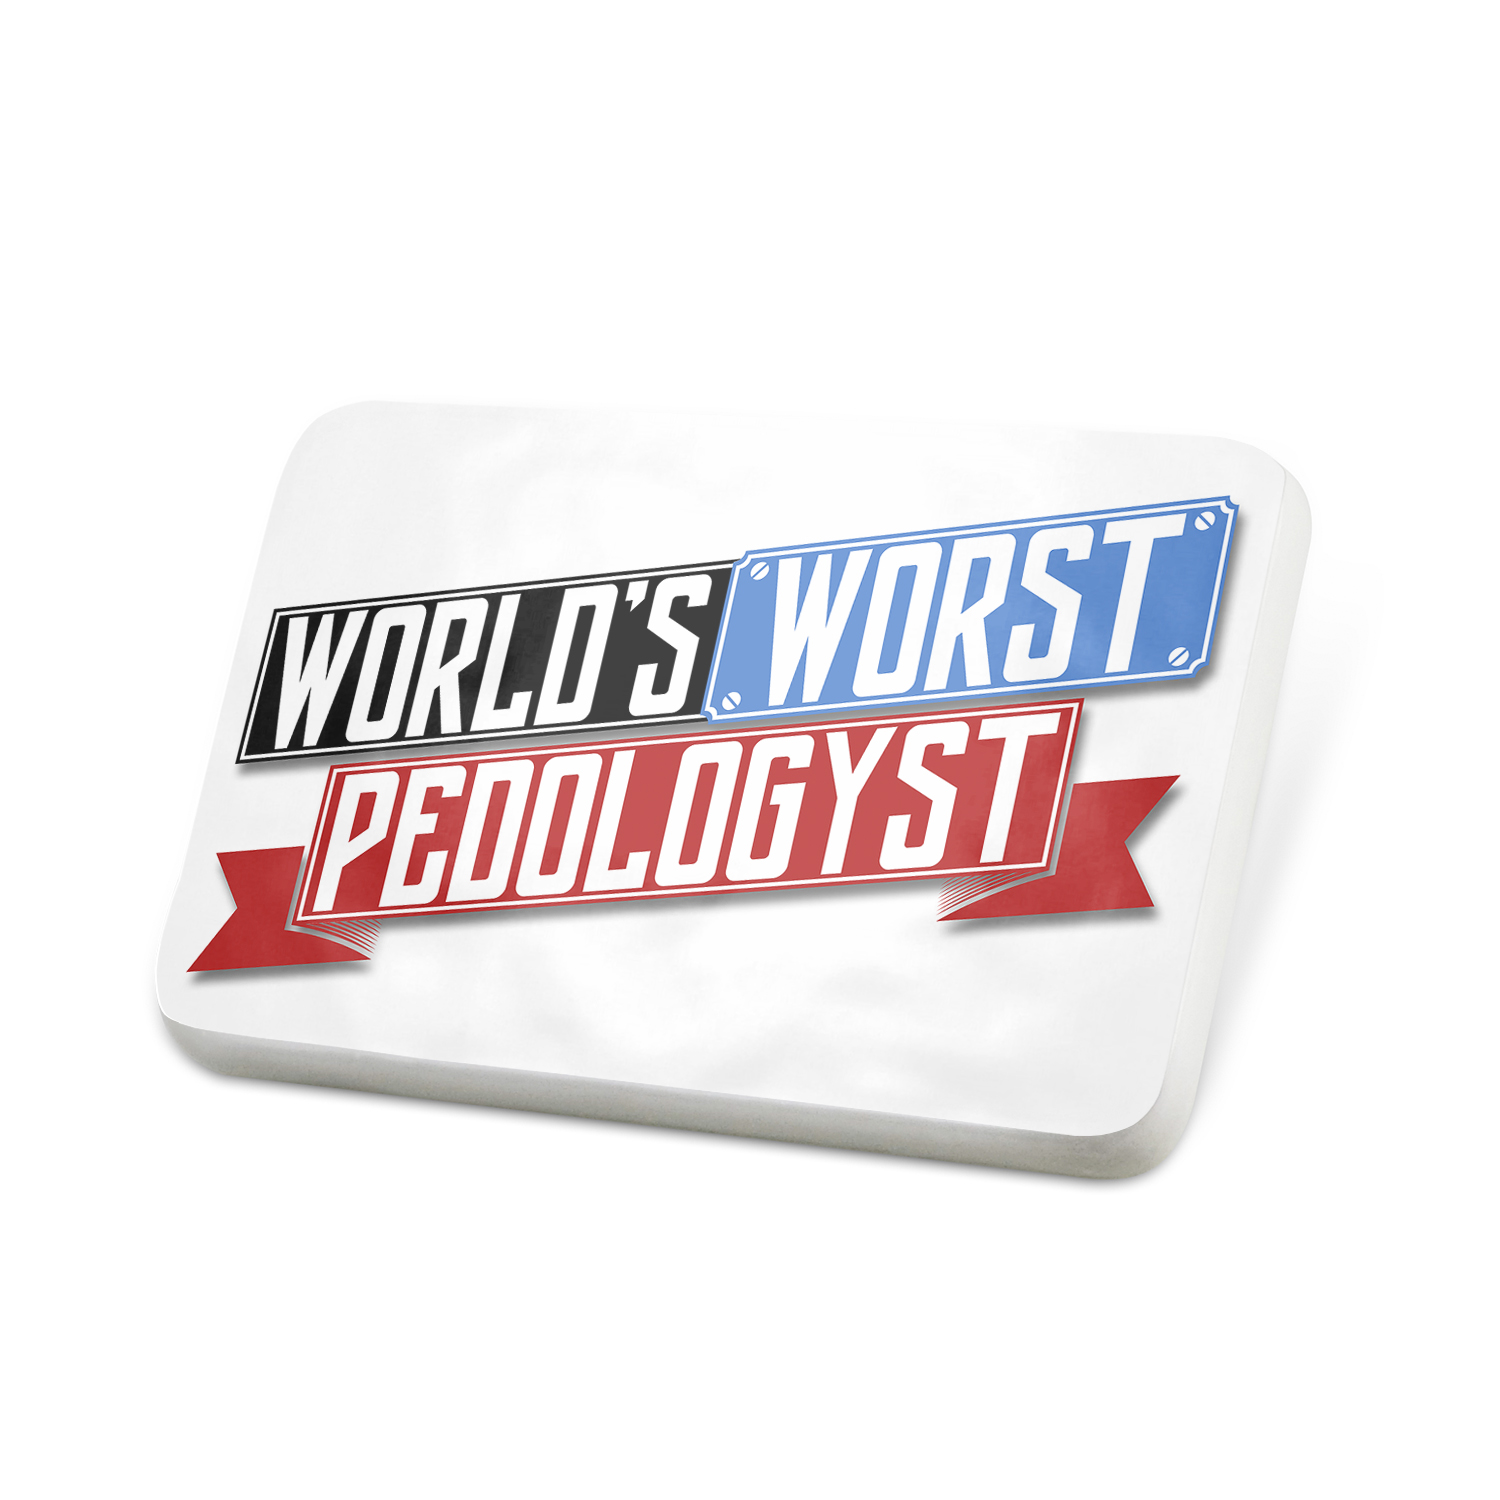 Porcelein Pin Funny Worlds worst Pedologyst Lapel Badge – NEONBLOND